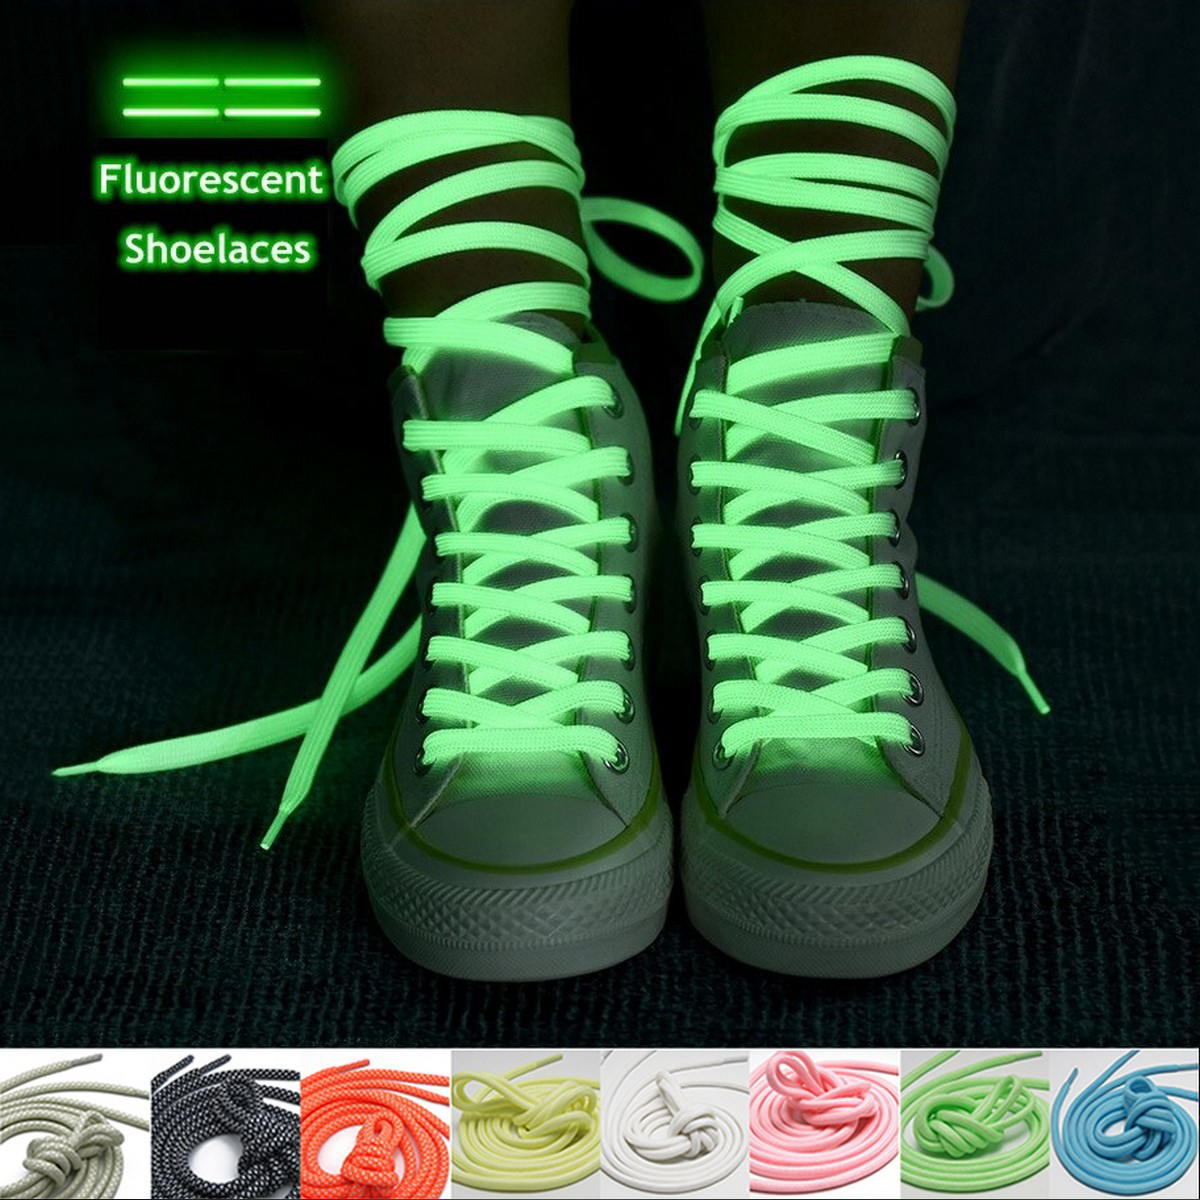 Luminous Glow In The Dark Fluorescent Shoelaces Flat Sports Casual Light Sport Shoes Accessories Shoe Laces Night Round Popular Lace Glowing For Running Basketball Sneakers Roller Skates Athletic